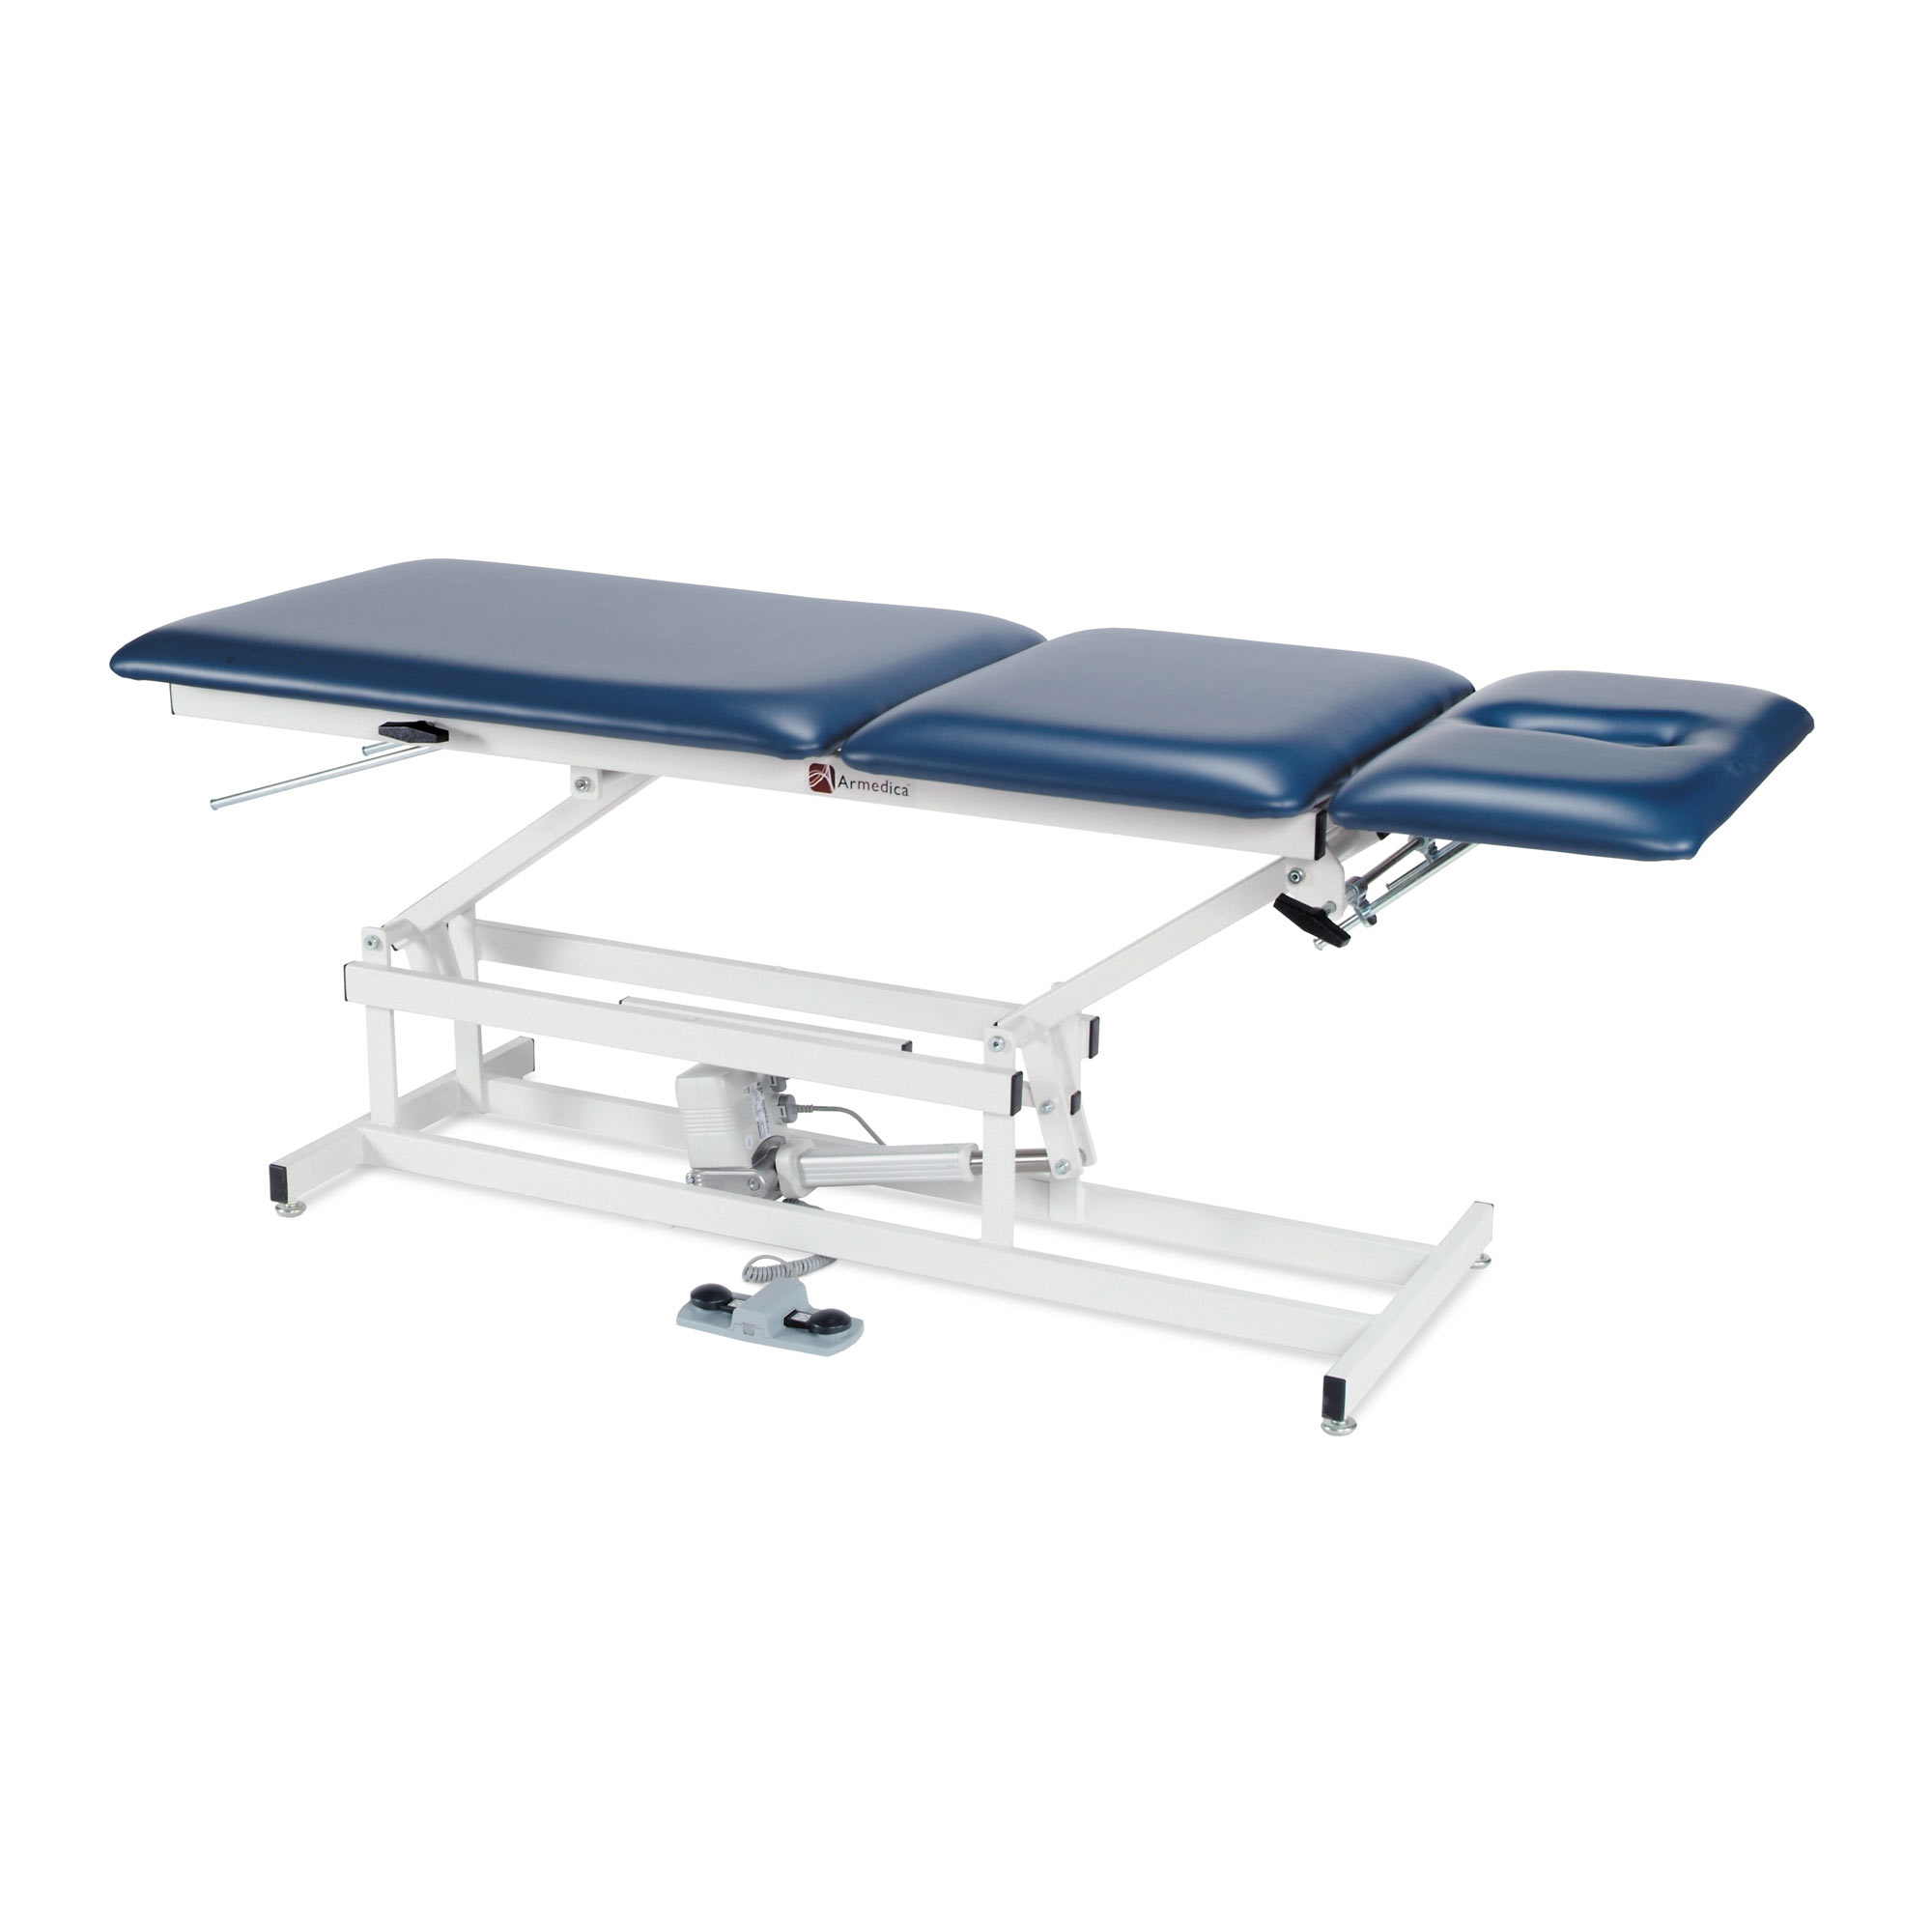 Armedica AM-340 bariatric treatment table